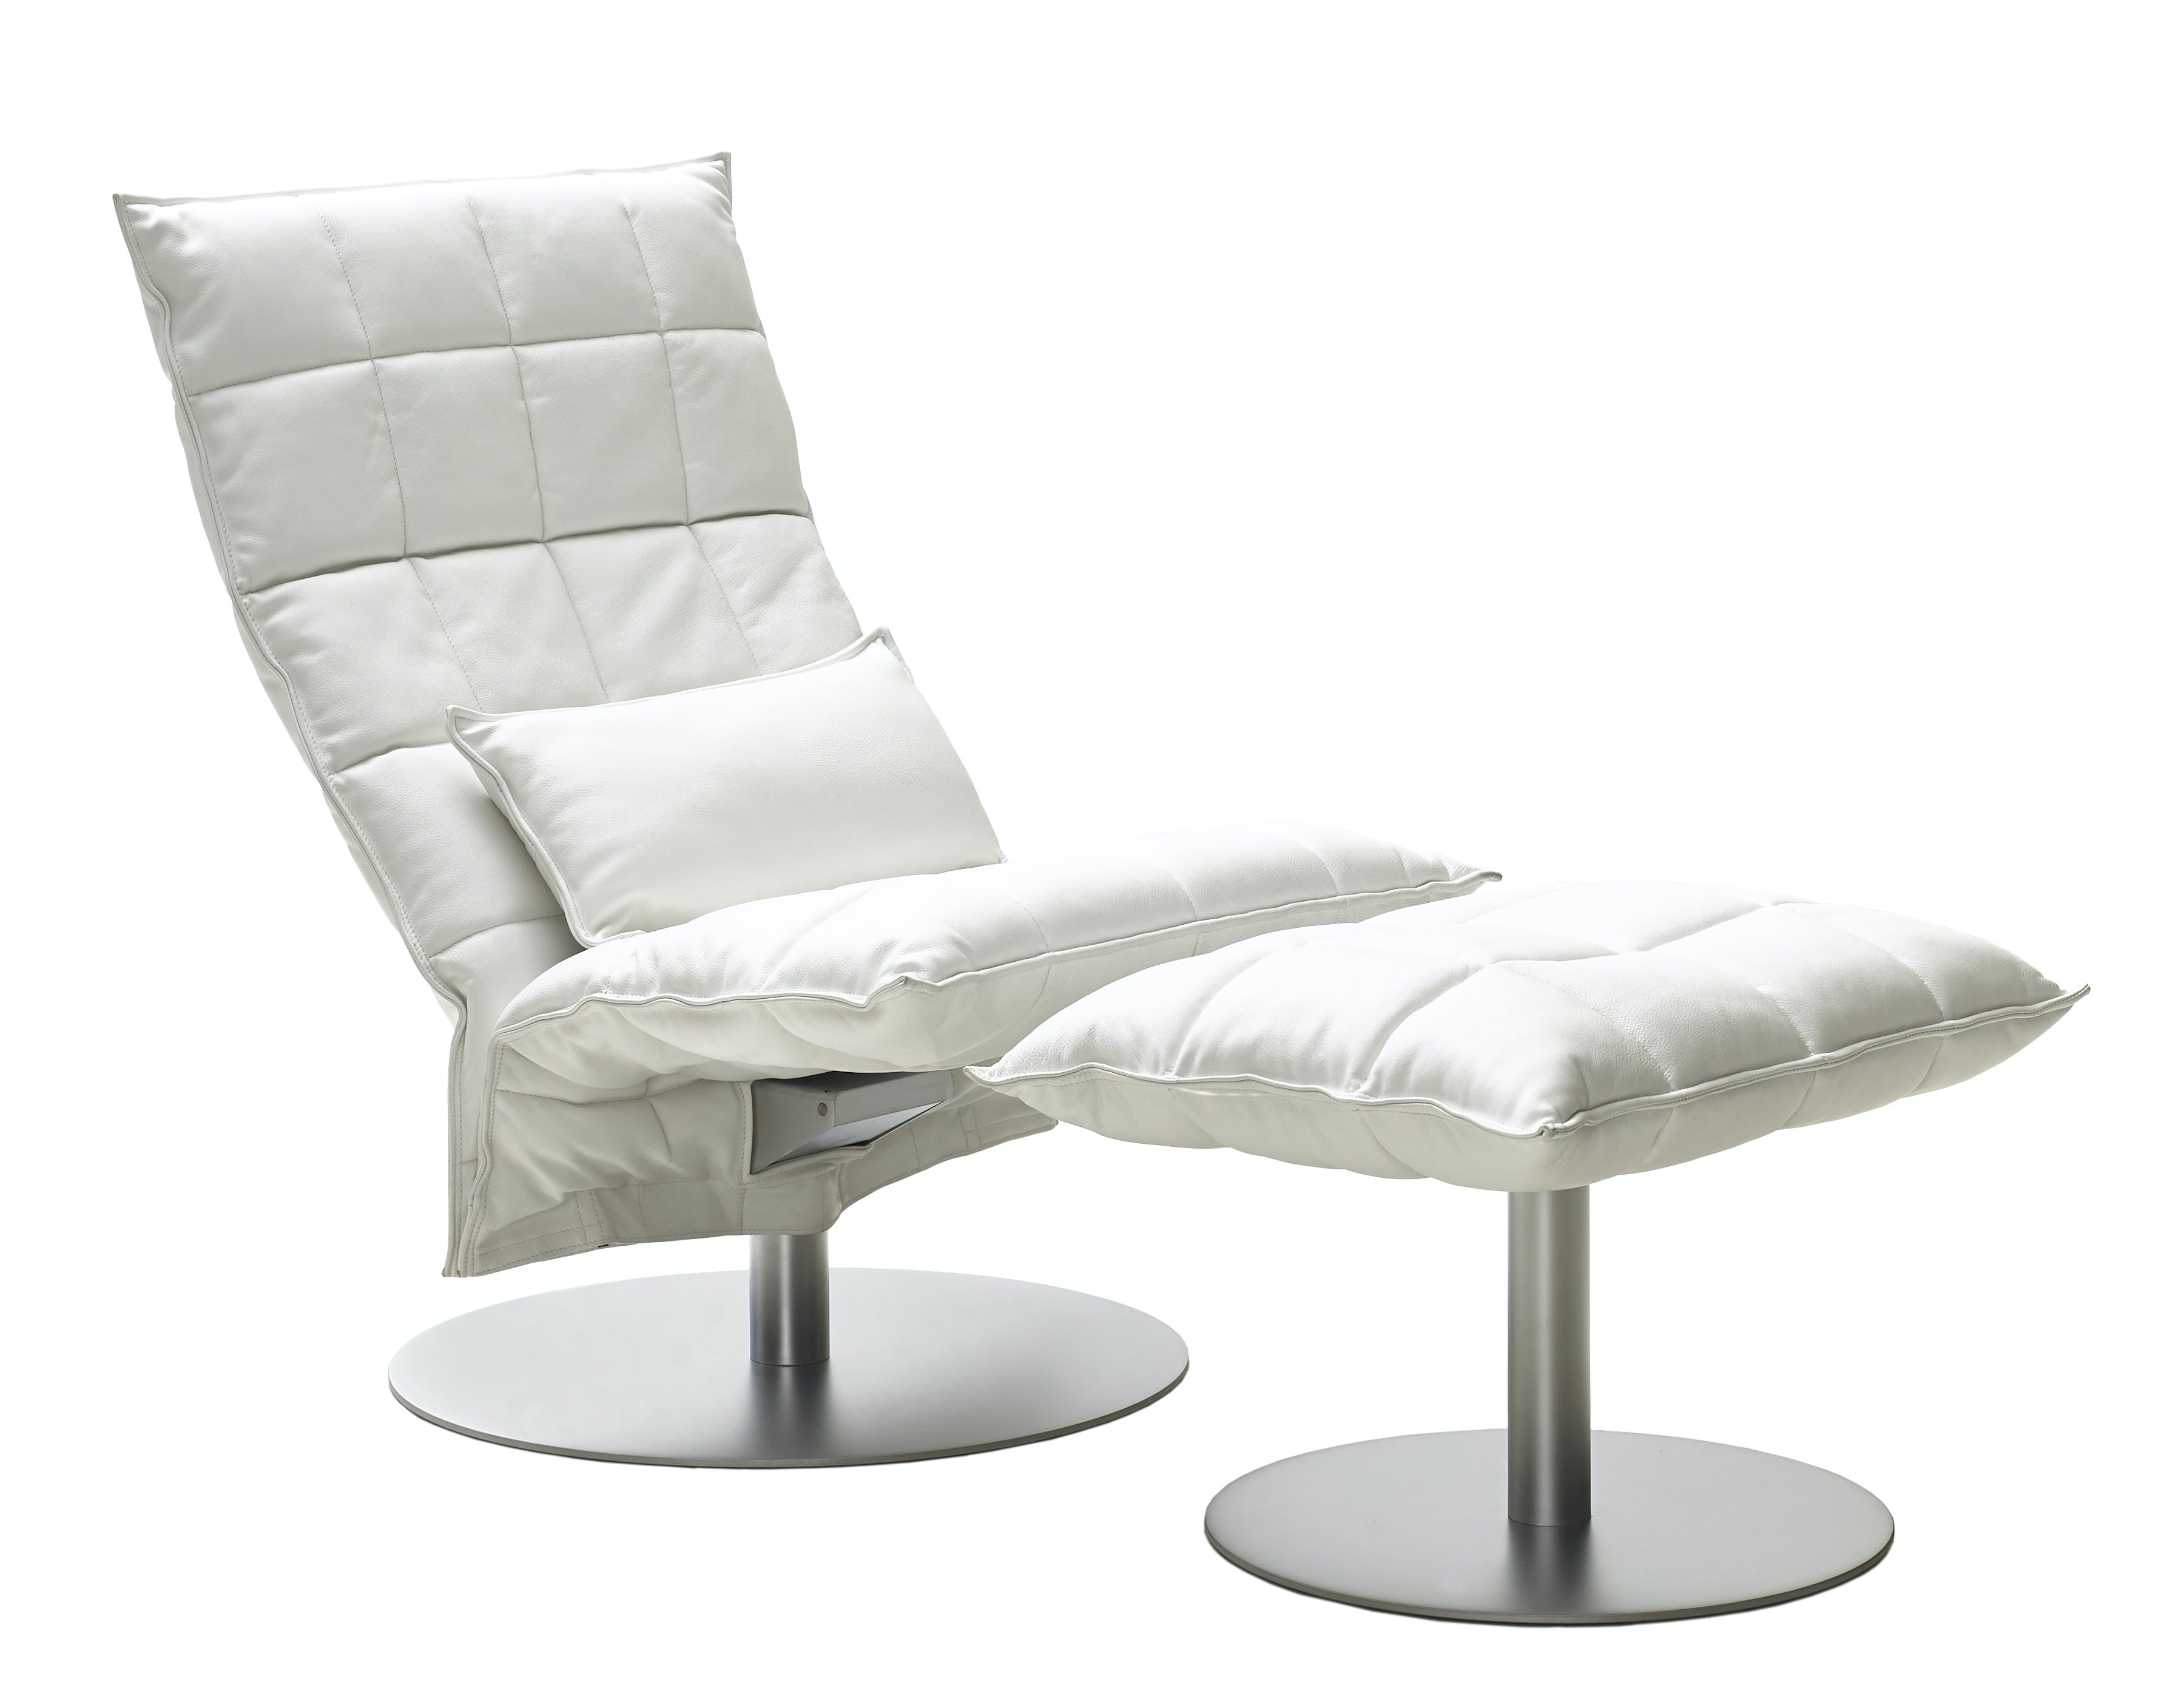 46007 Narrow Swivel K Chair With 46017 Narrow K Ottoman With Plate And 4605 K Cushion White Leather Upholstery